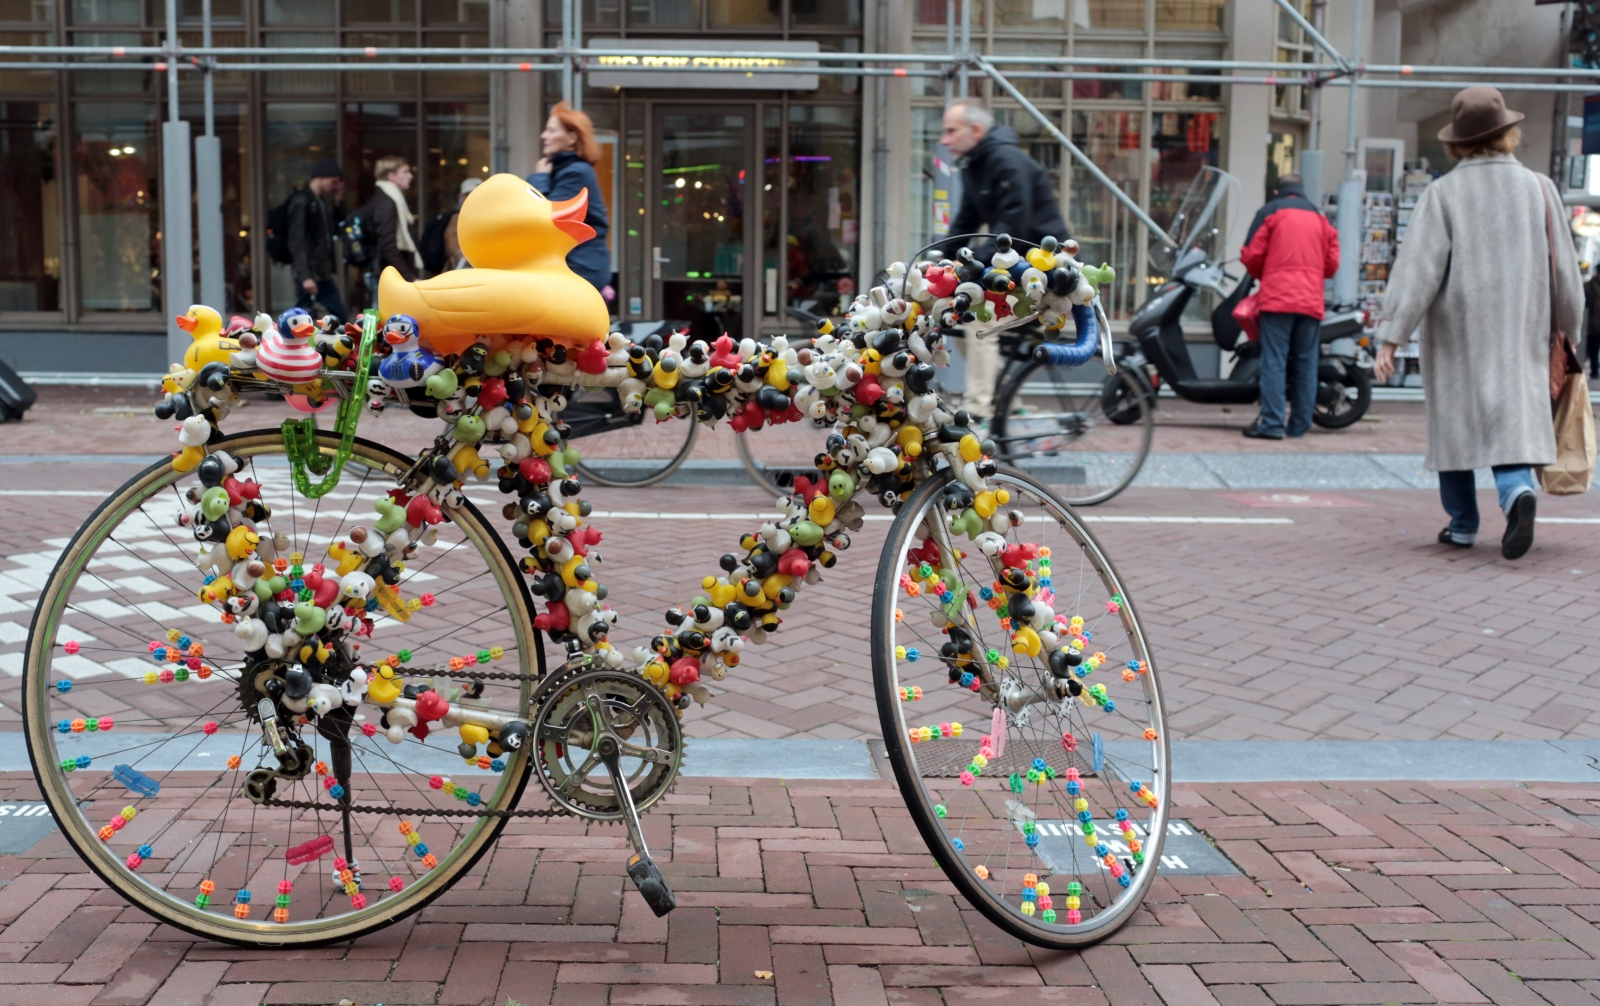 A duck decorated bicycle is seen in Amsterdam.